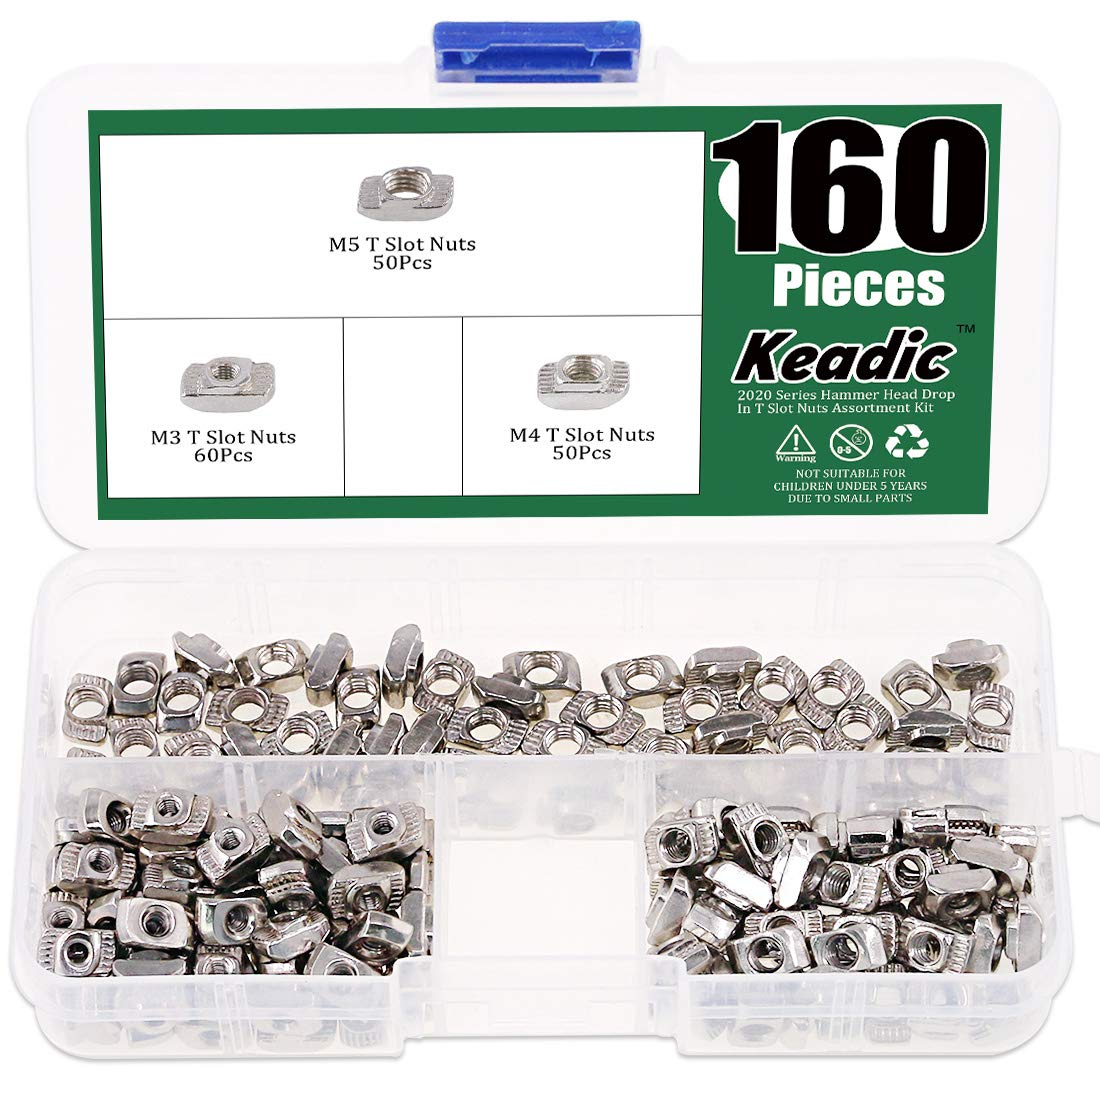 Keadic 160Pcs 2020 Series T Nuts, M3 M4 M5 Hammer Head Fastener Drop in T Slot Nut Assortment Kit with Organizing Box for Aluminum Profile - Carbon Steel Nickel Plated